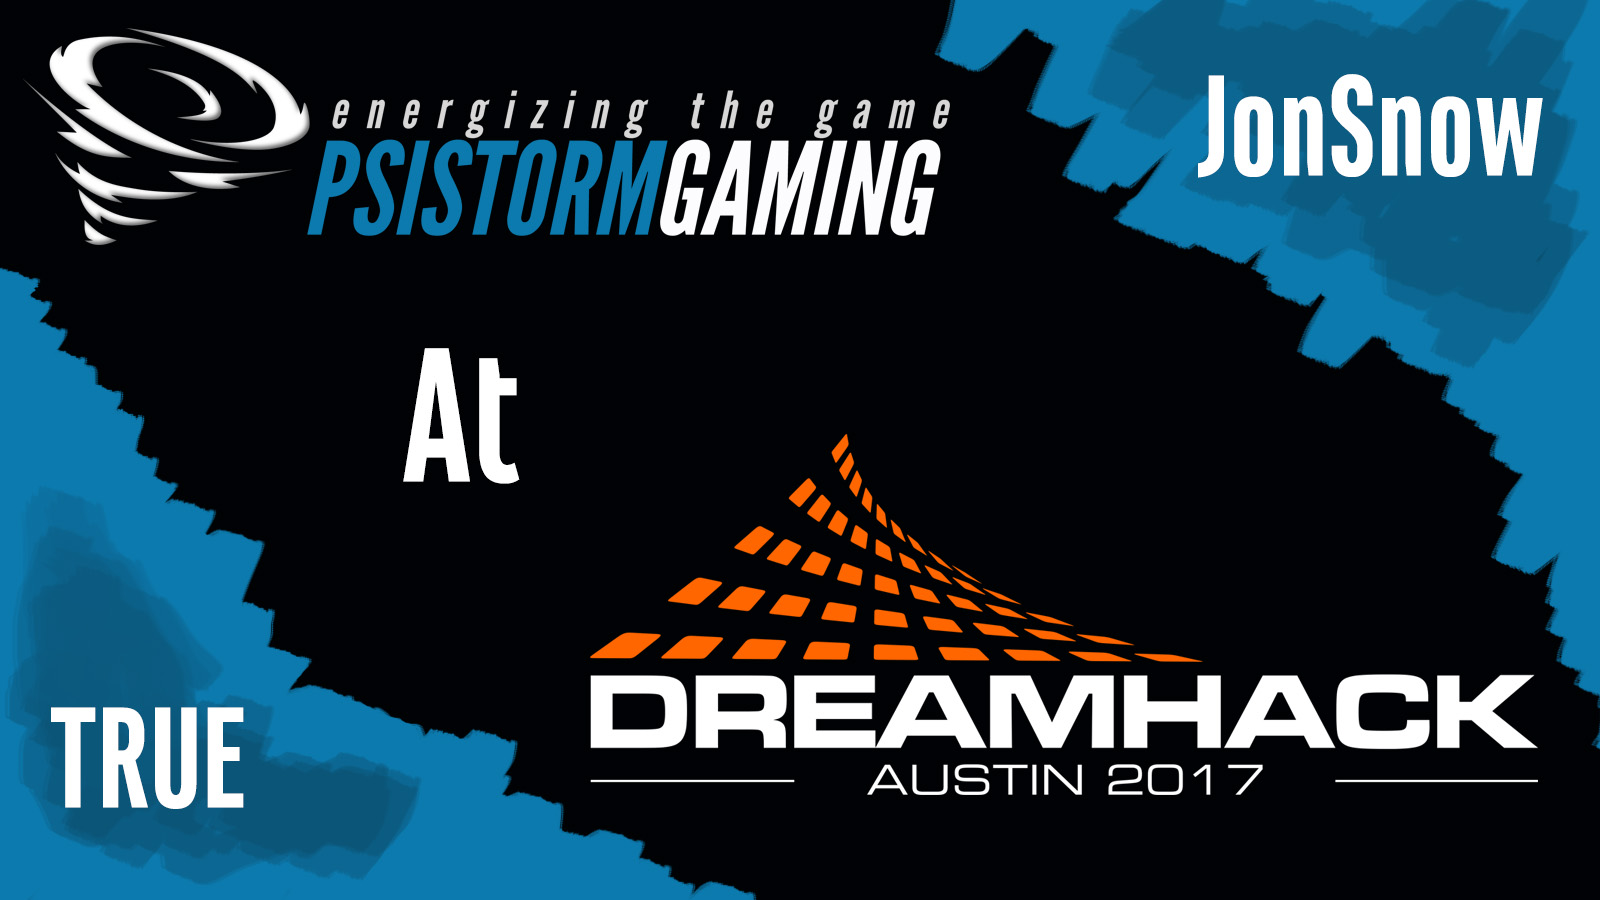 PSISTORM At Dreamhack Austin: Day 1